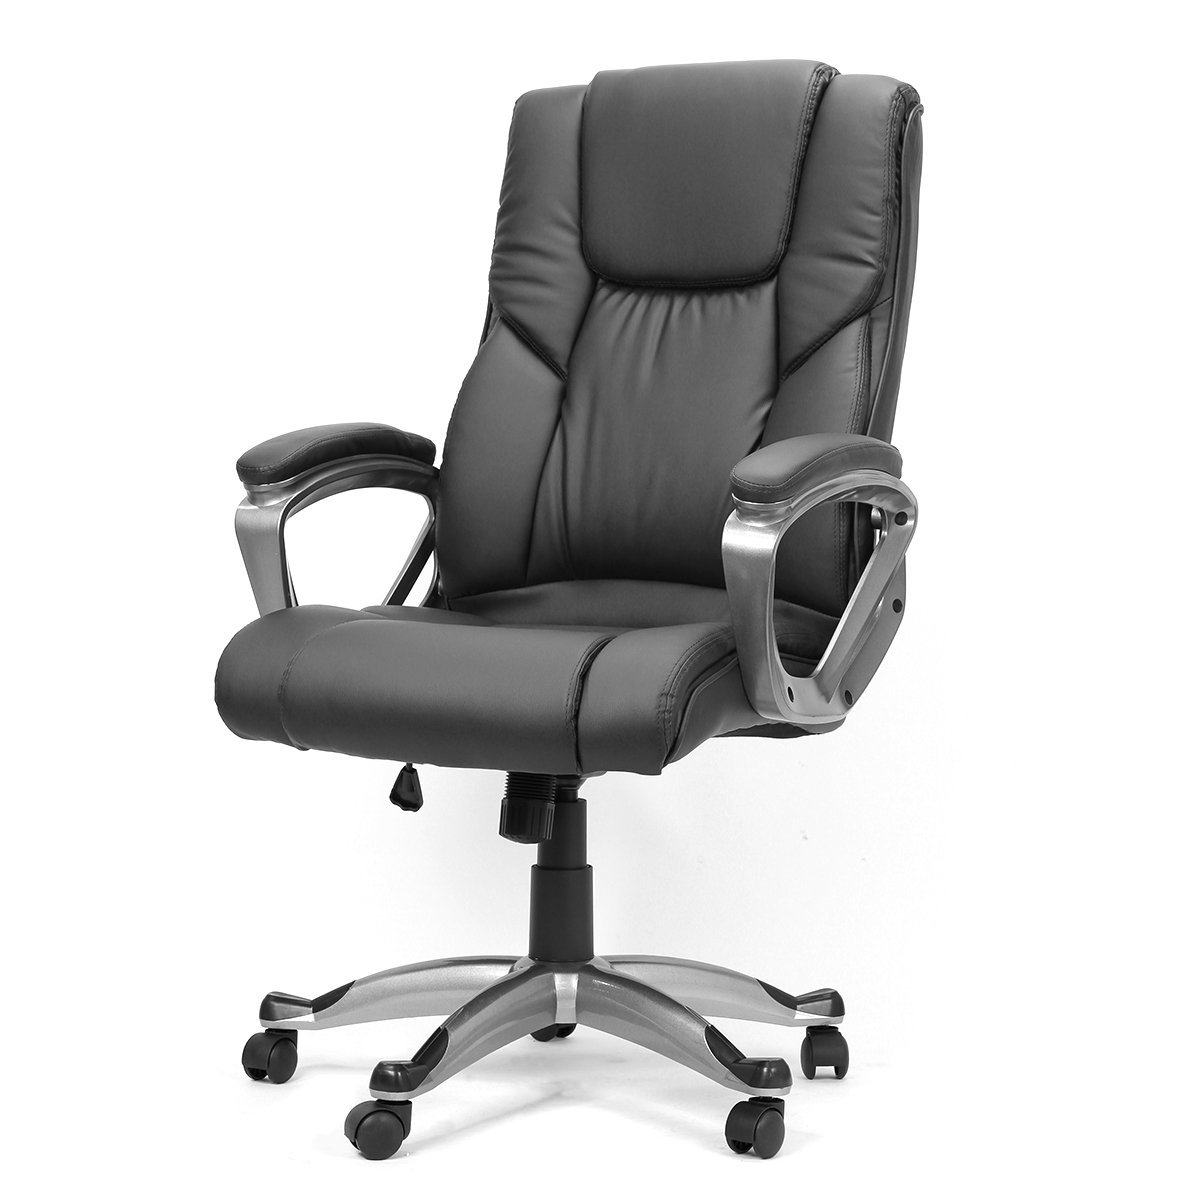 XTREMEPOWERUS PU LEATHER EXECUTIVE CHAIR